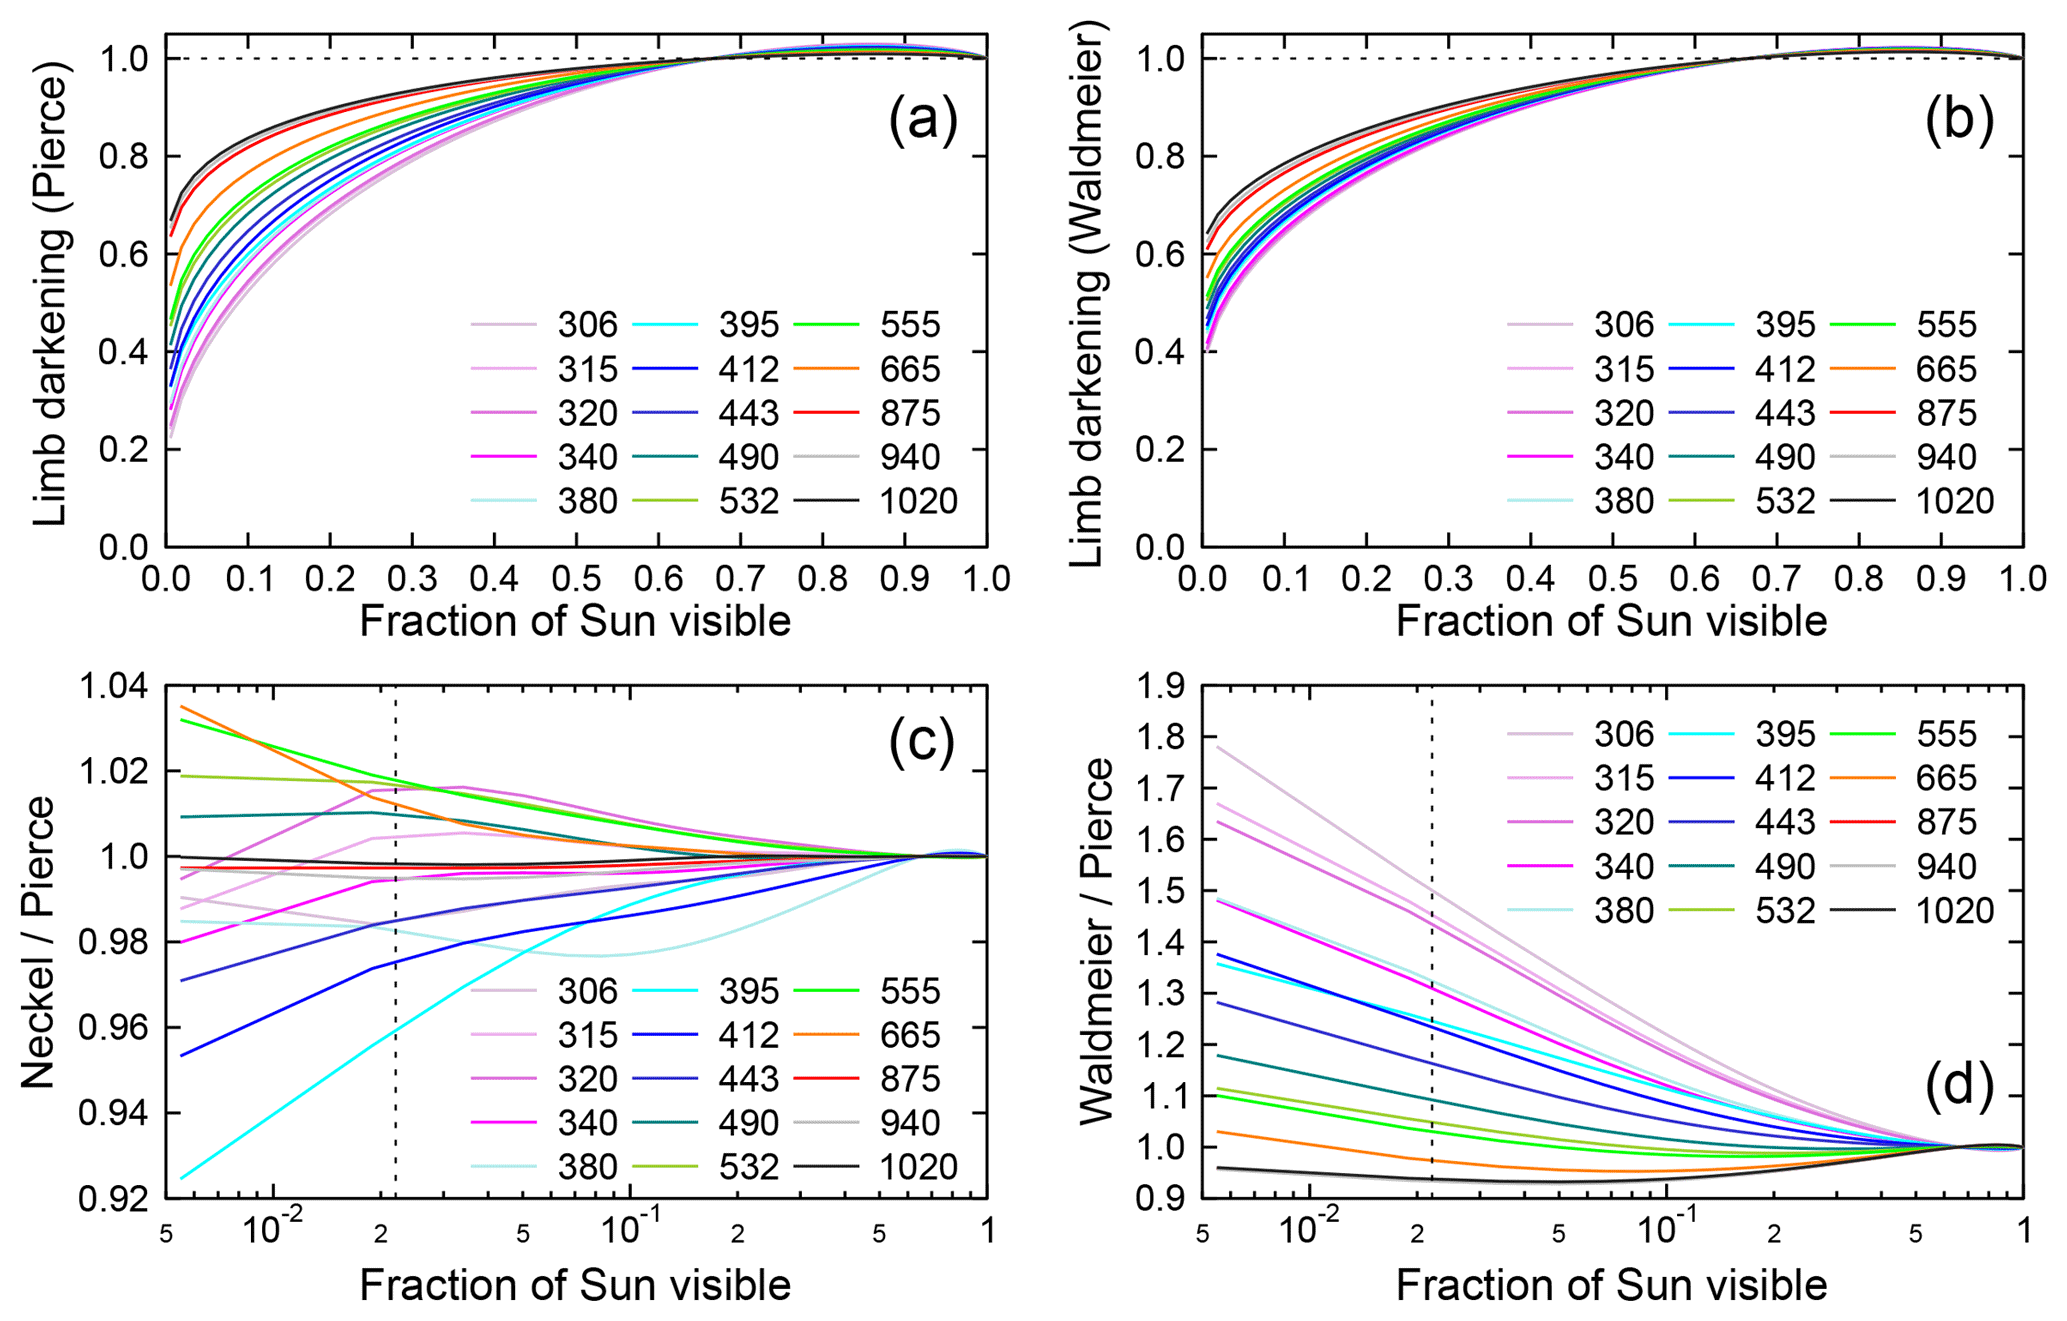 ACP - Measurements of spectral irradiance during the solar eclipse